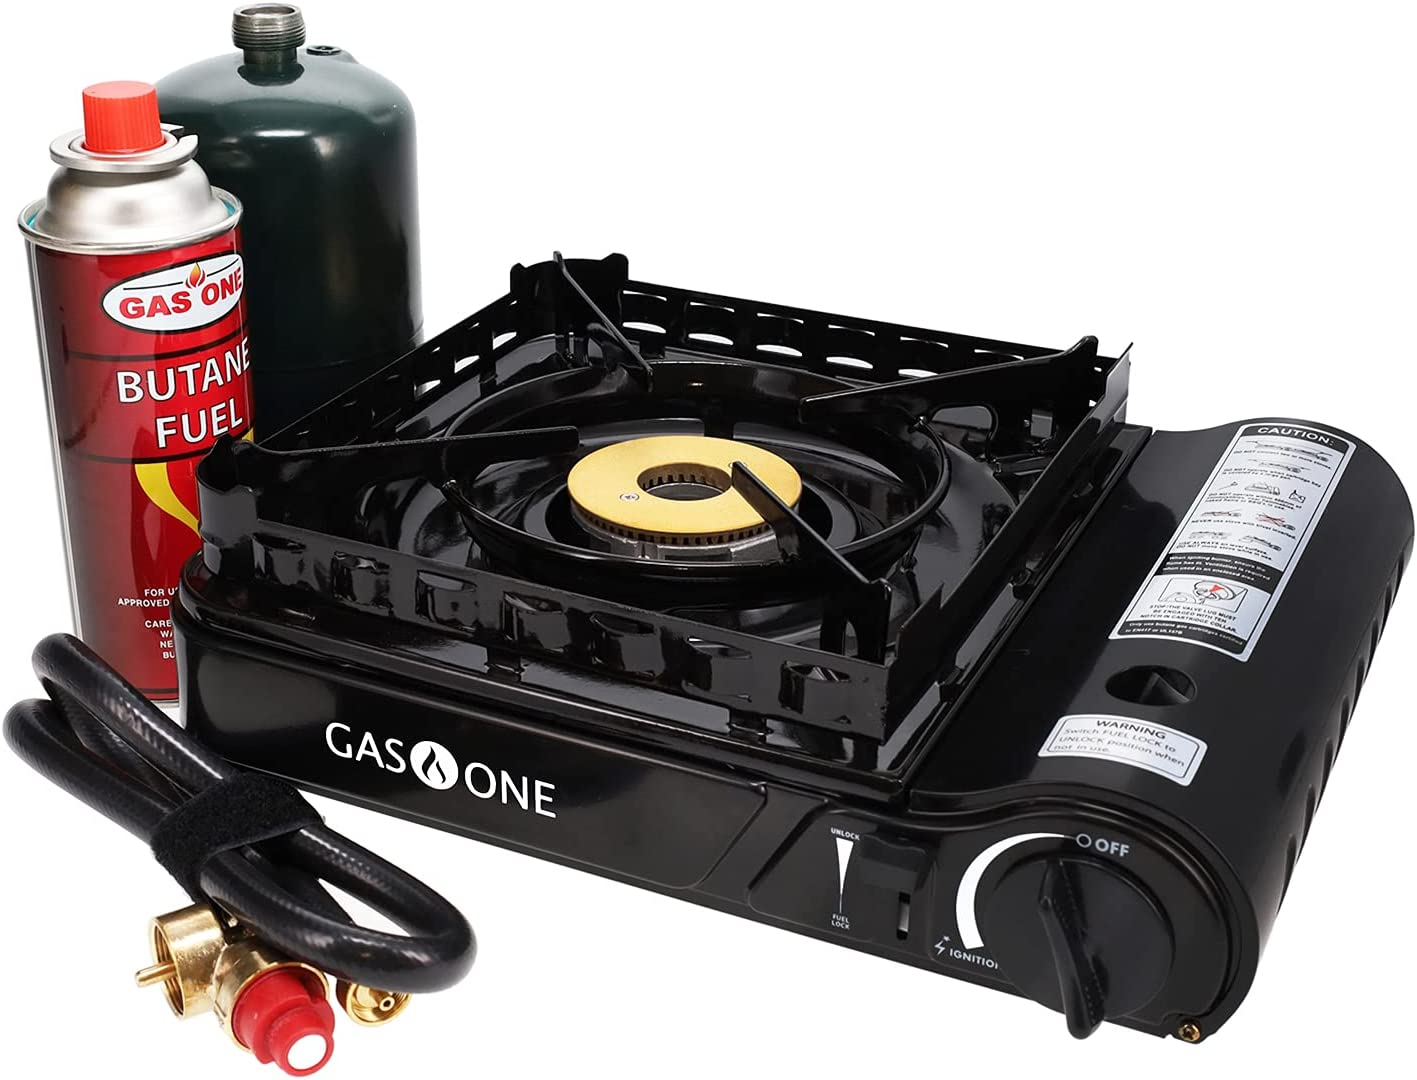 Gas ONE 2021 GS-3900P New Dual Excellence Fuel Propane Stove Butane Portable or